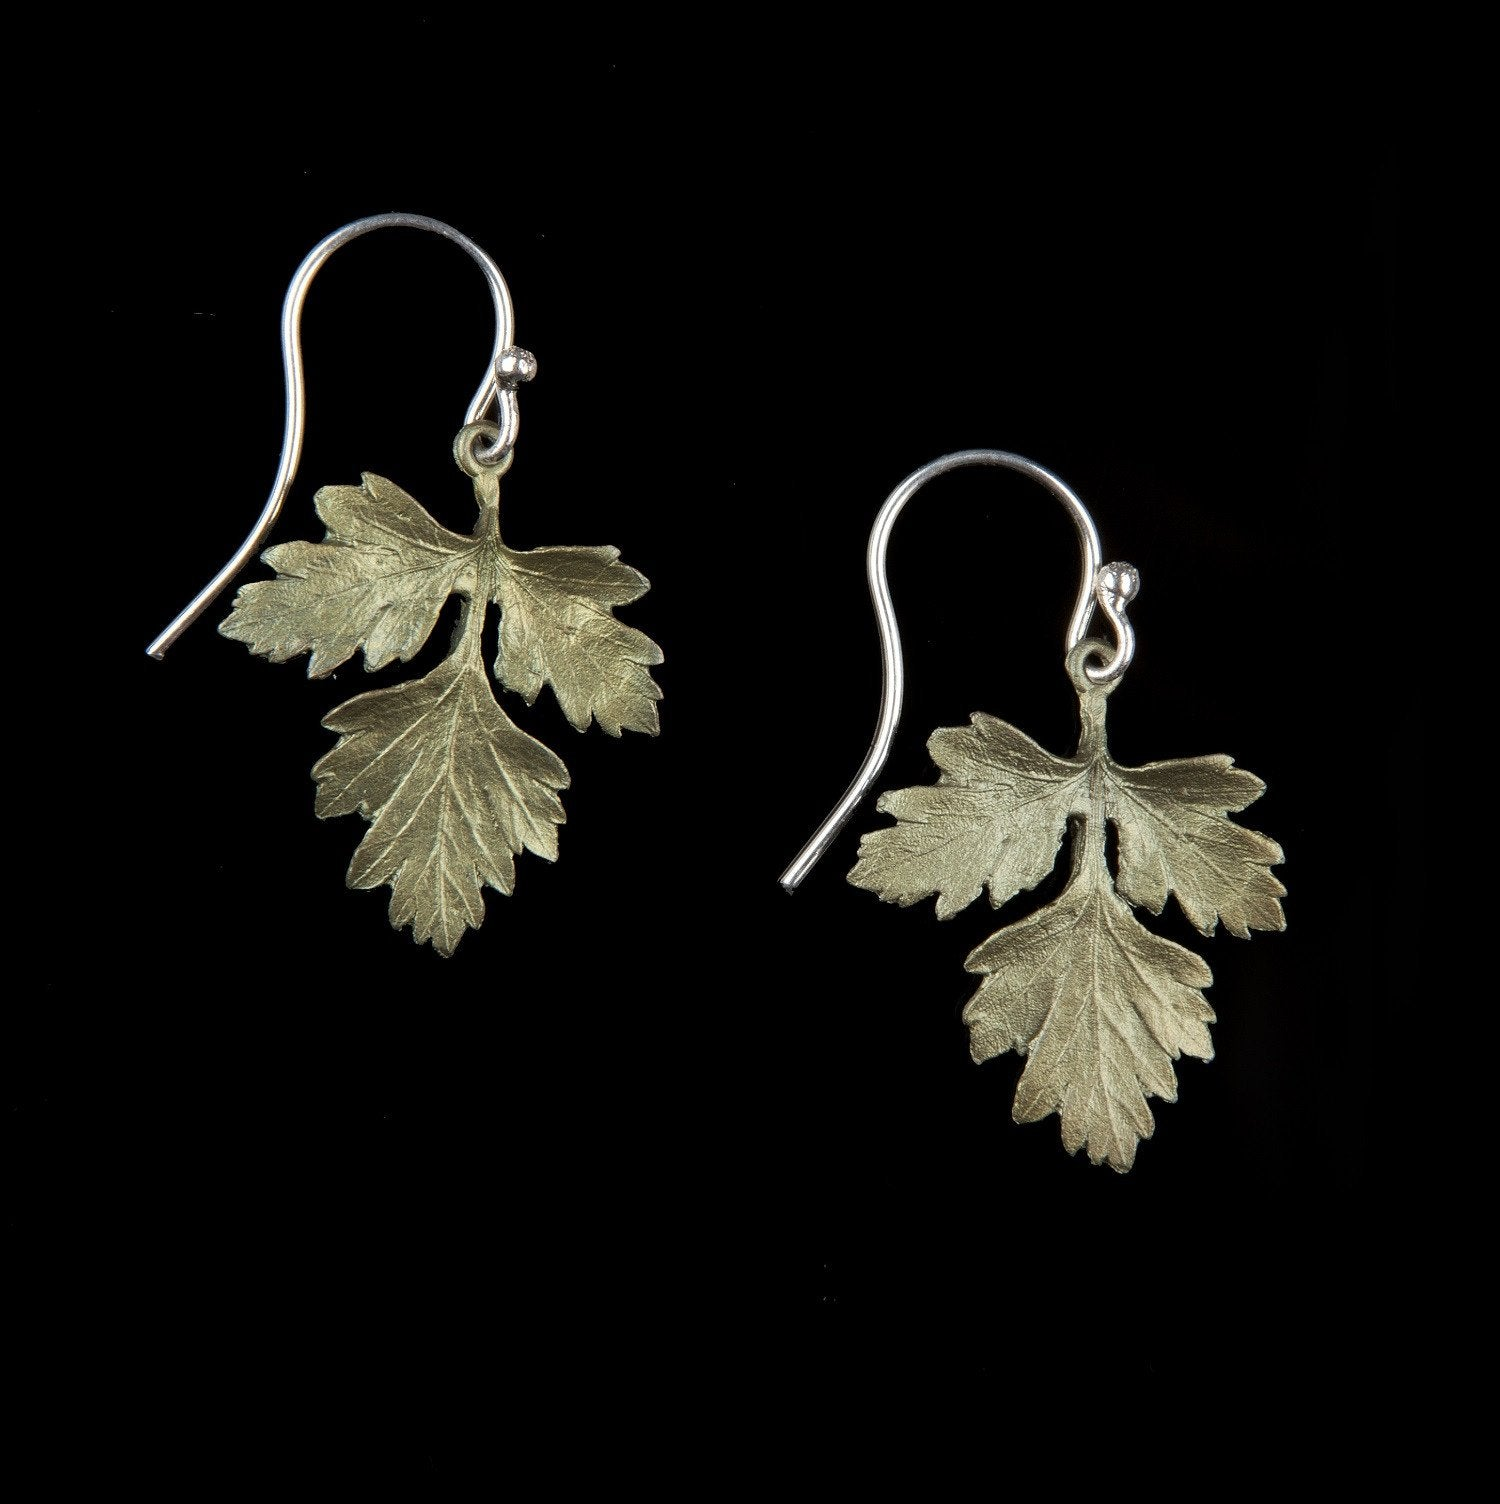 Petite Herb - Parsley Wire Earring